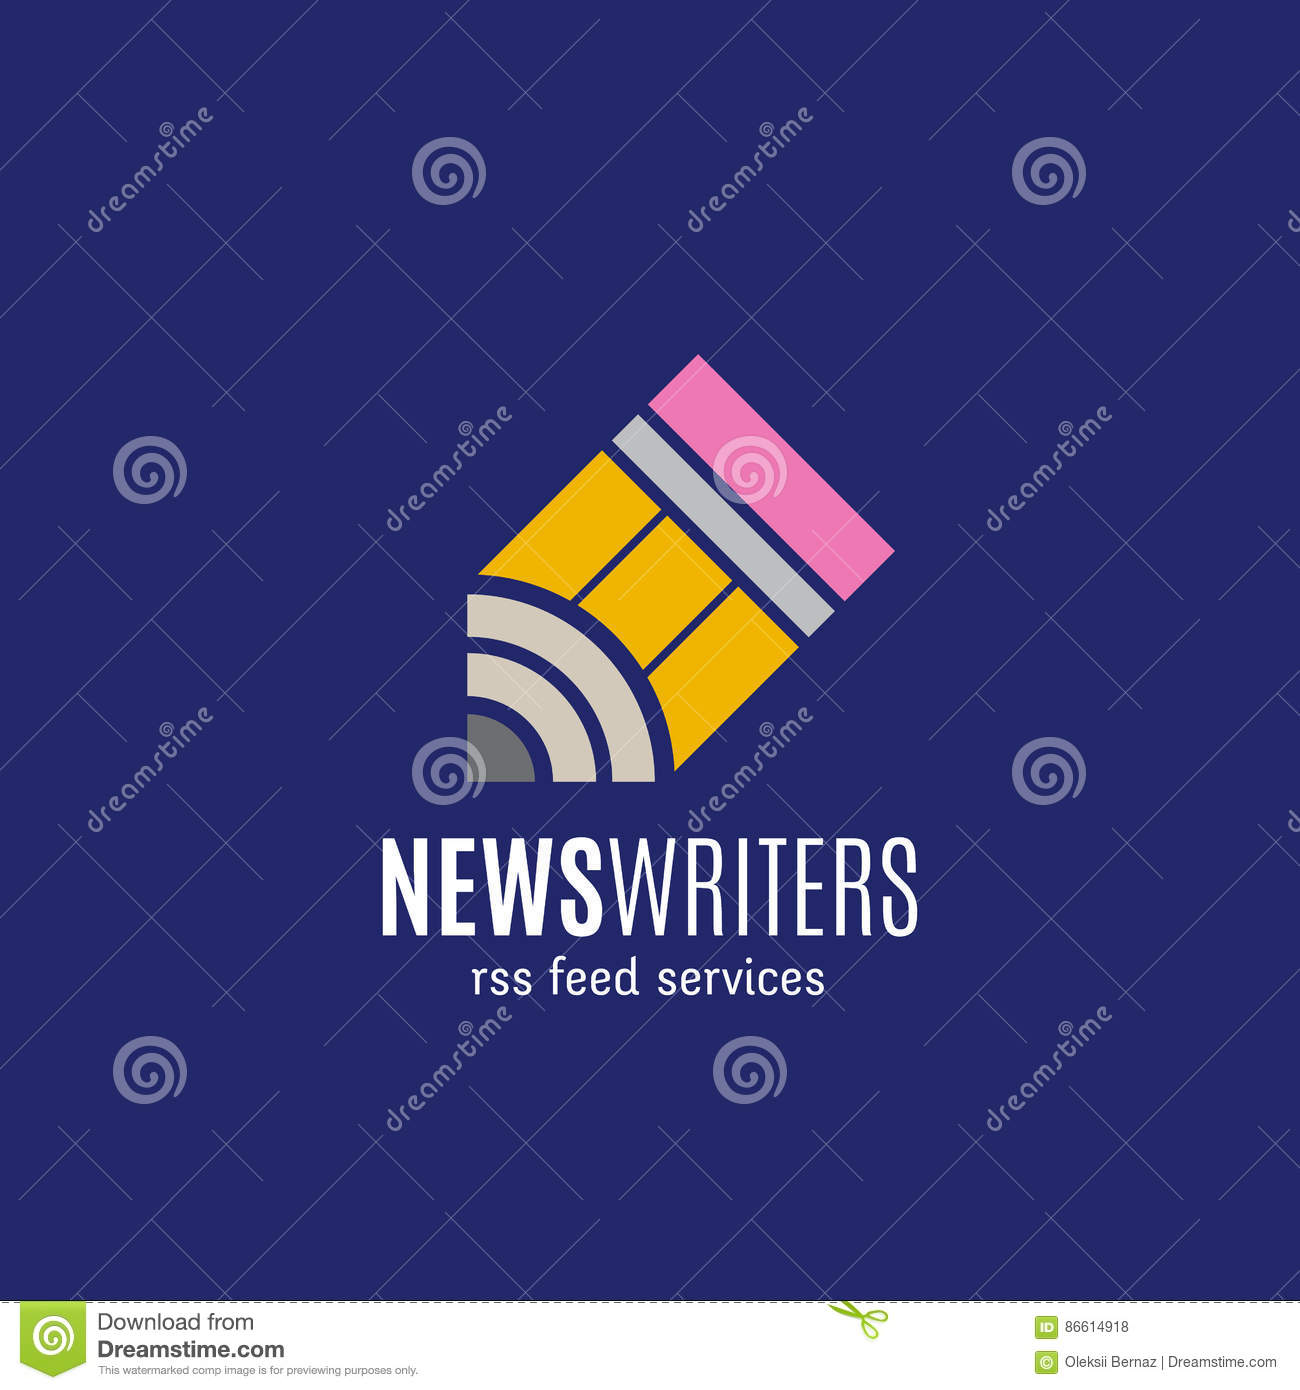 News Writers RSS Feed Services Abstract Vector Sign, Emblem